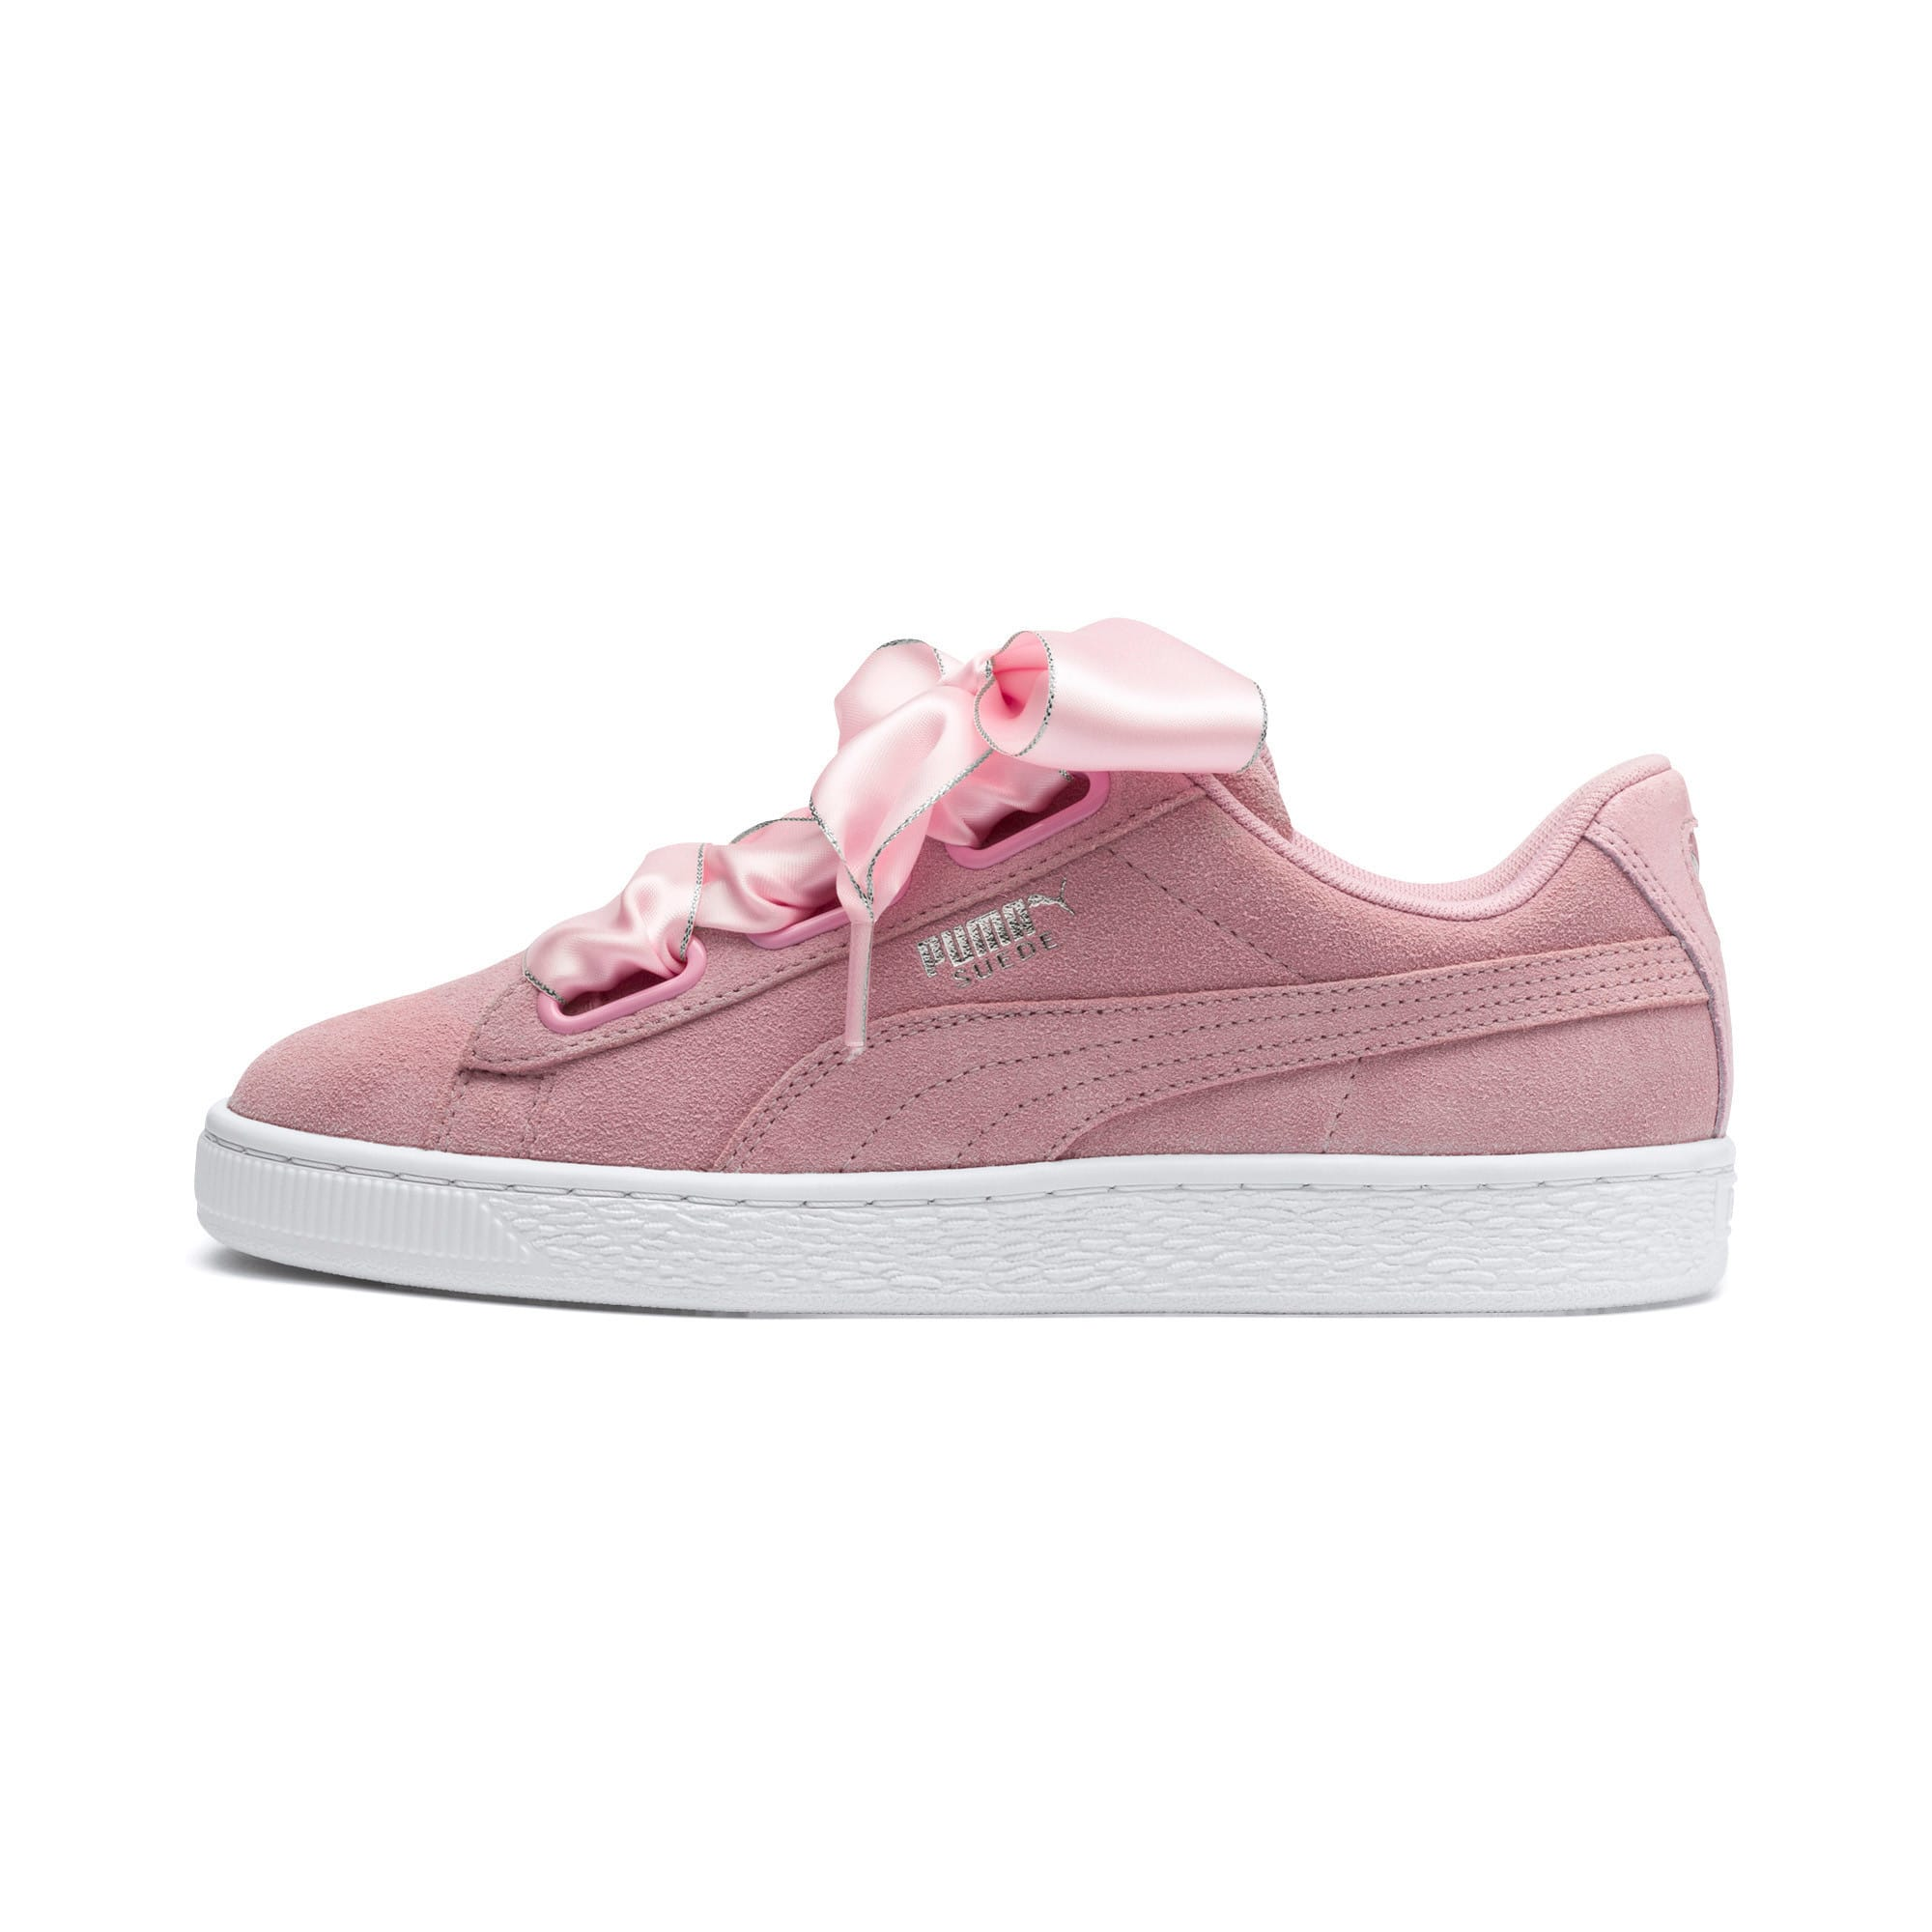 Thumbnail 1 of Suede Heart Galaxy Women's Shoes, Pale Pink-Puma Silver, medium-IND